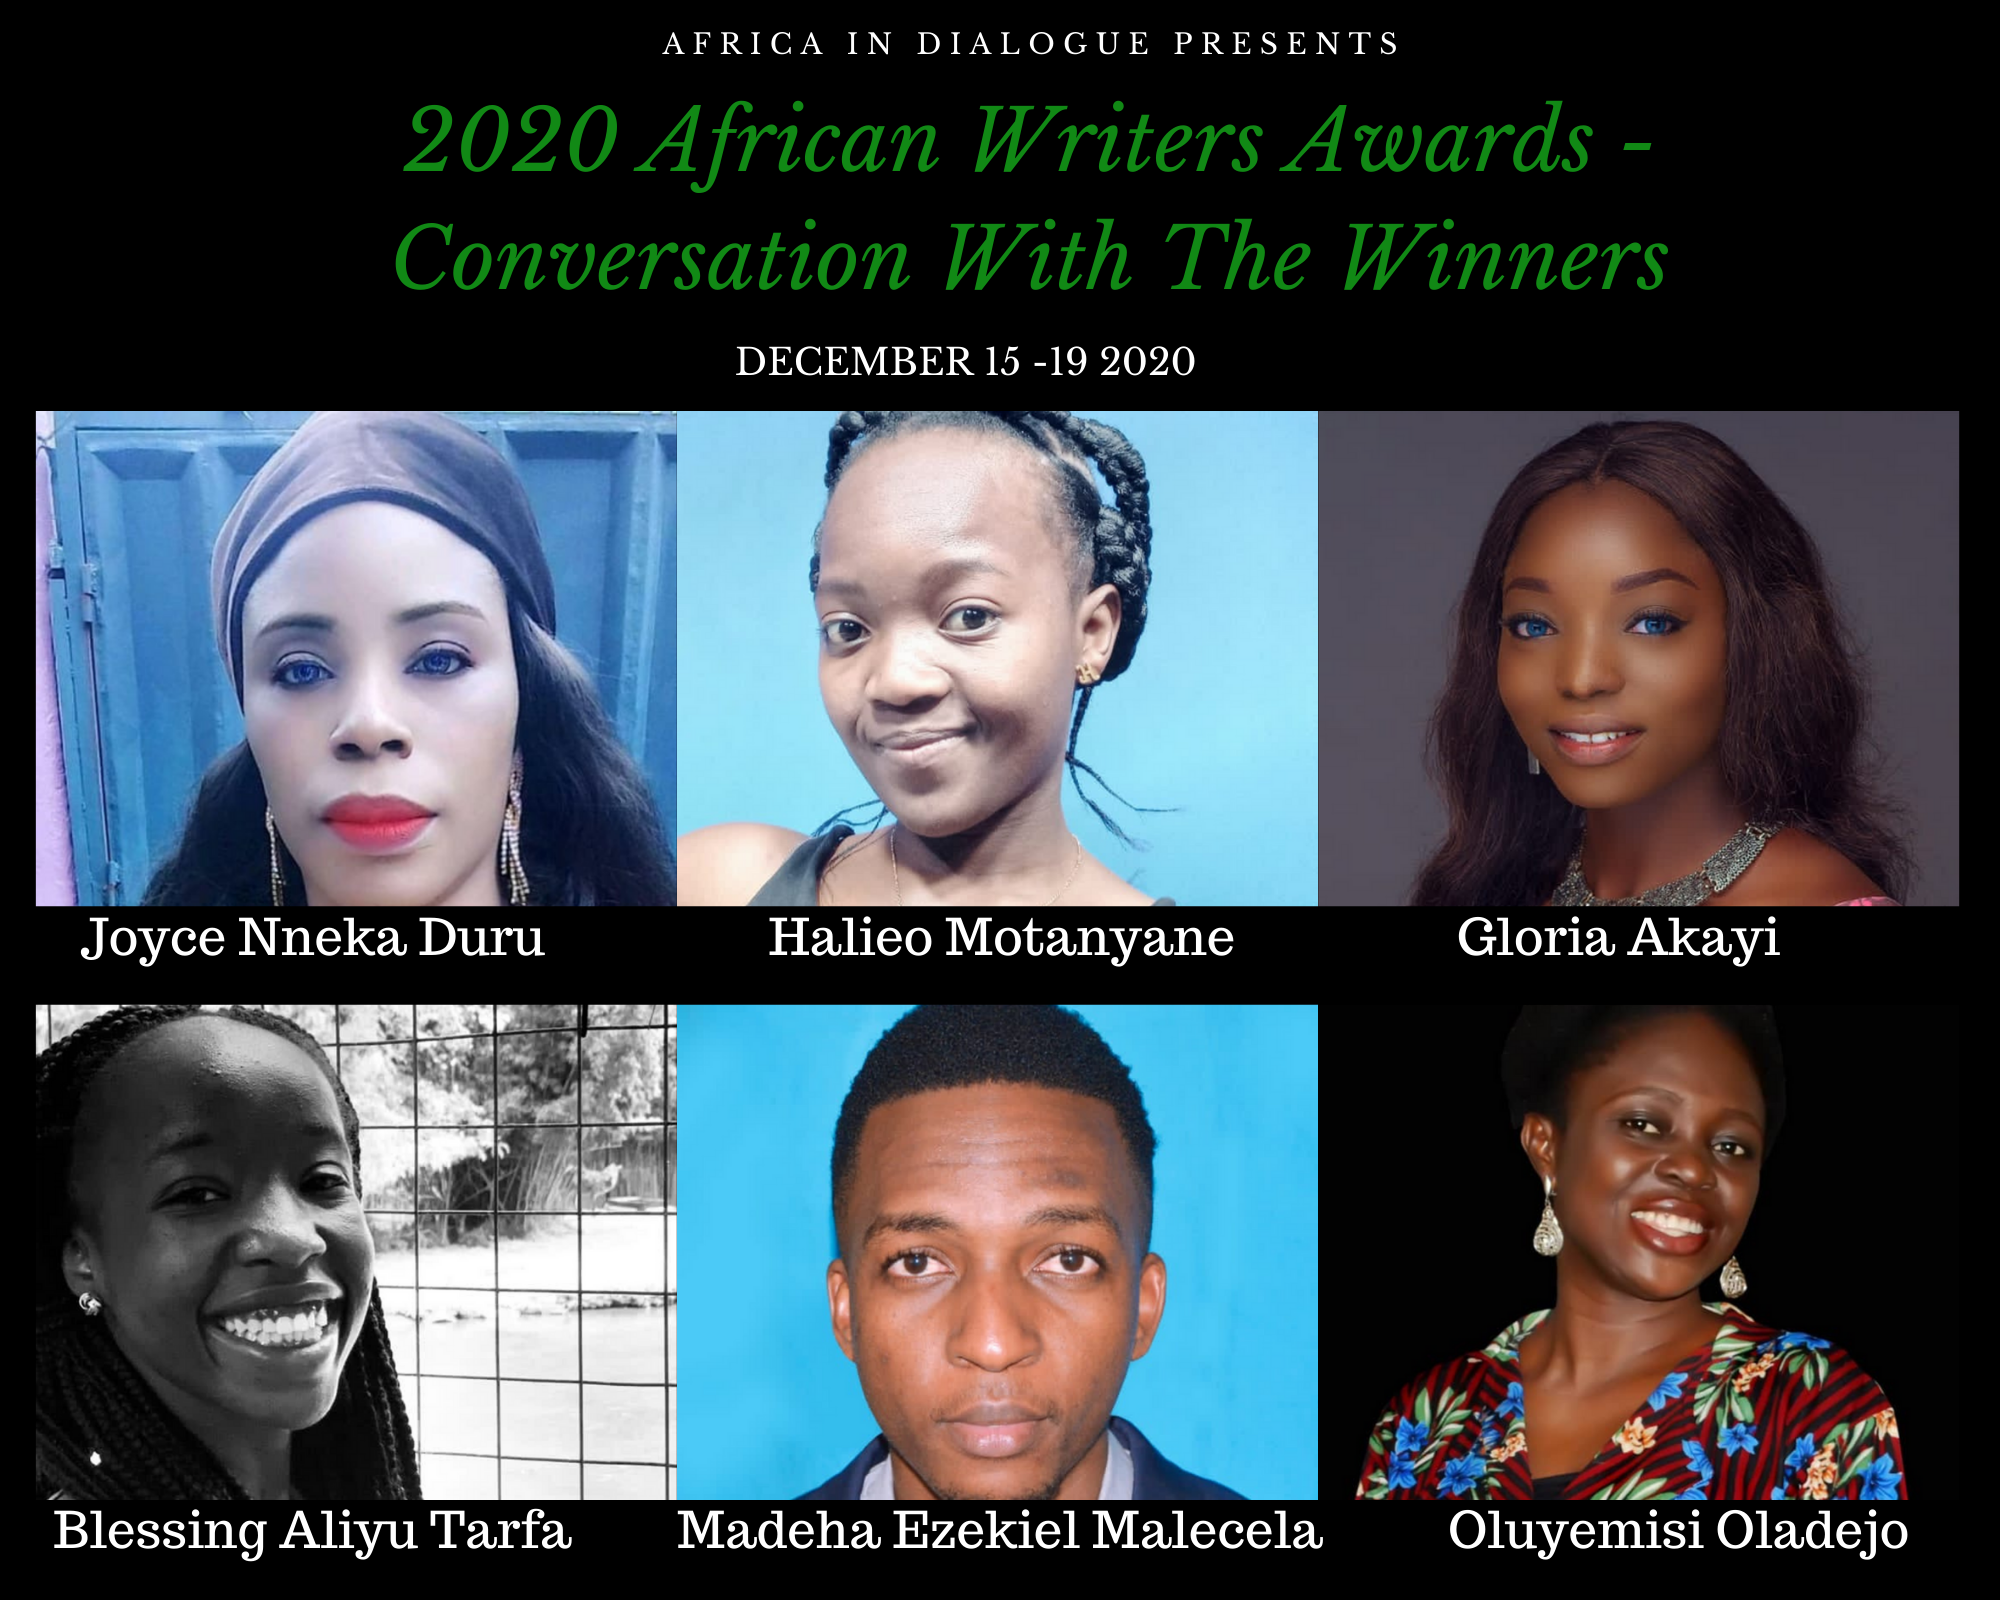 2020 African Writers Awards and the Wakini Kuria Award for Children's Literature